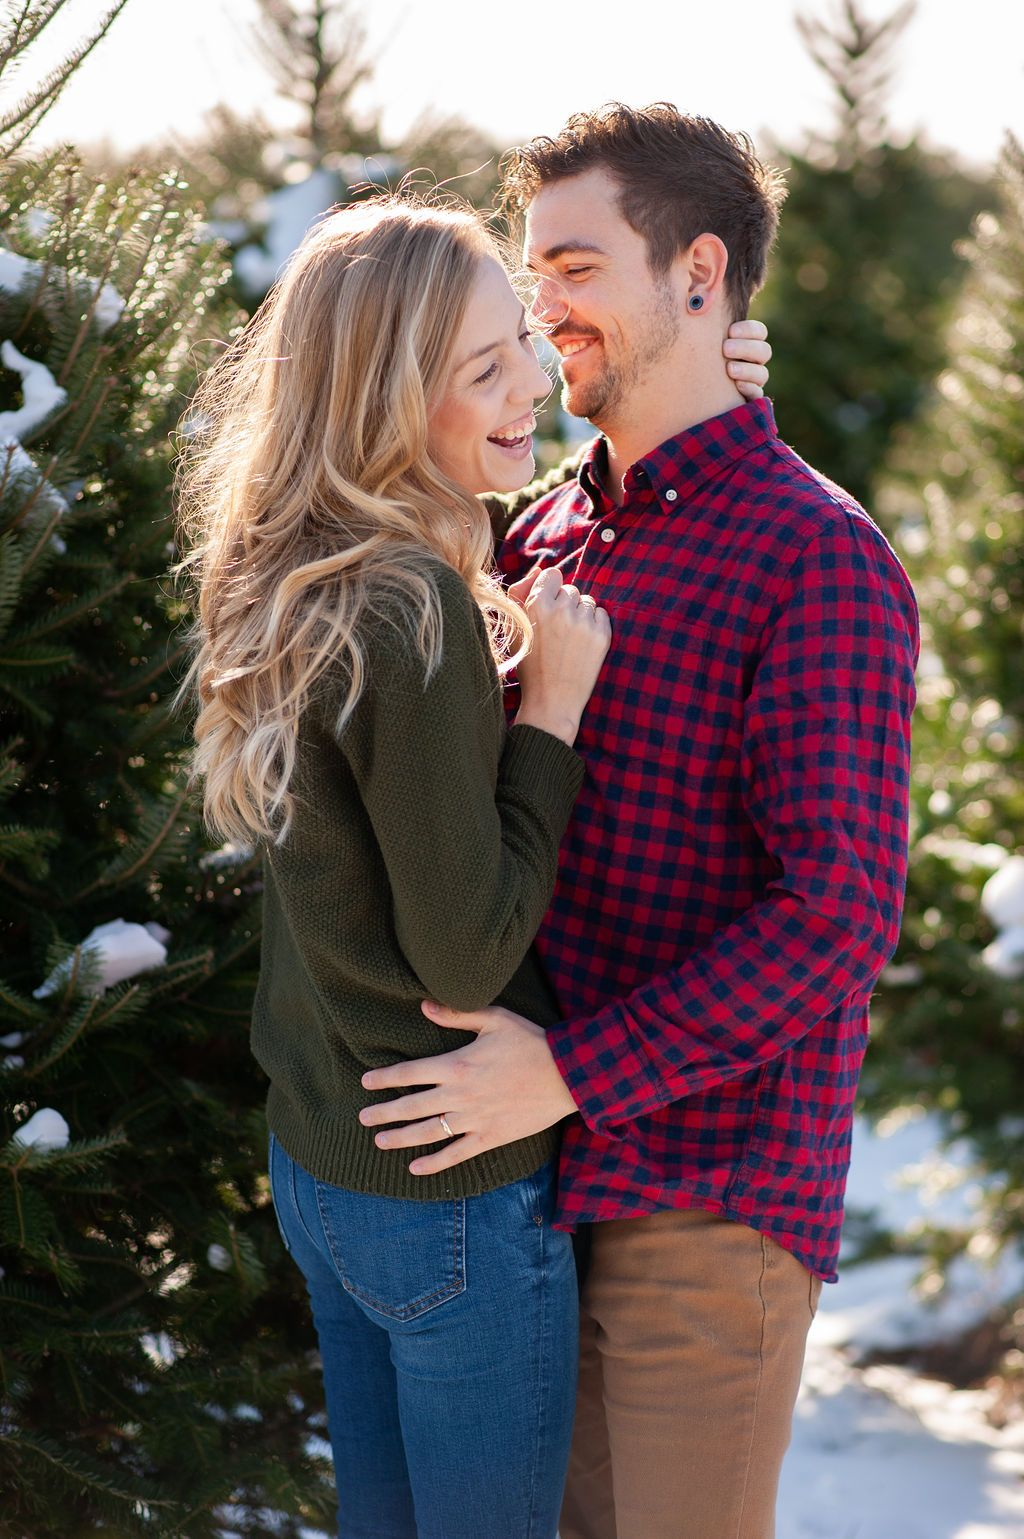 Couples Christmas Pose In 2020 Family Photoshoot Poses Christmas Poses Photoshoot Poses